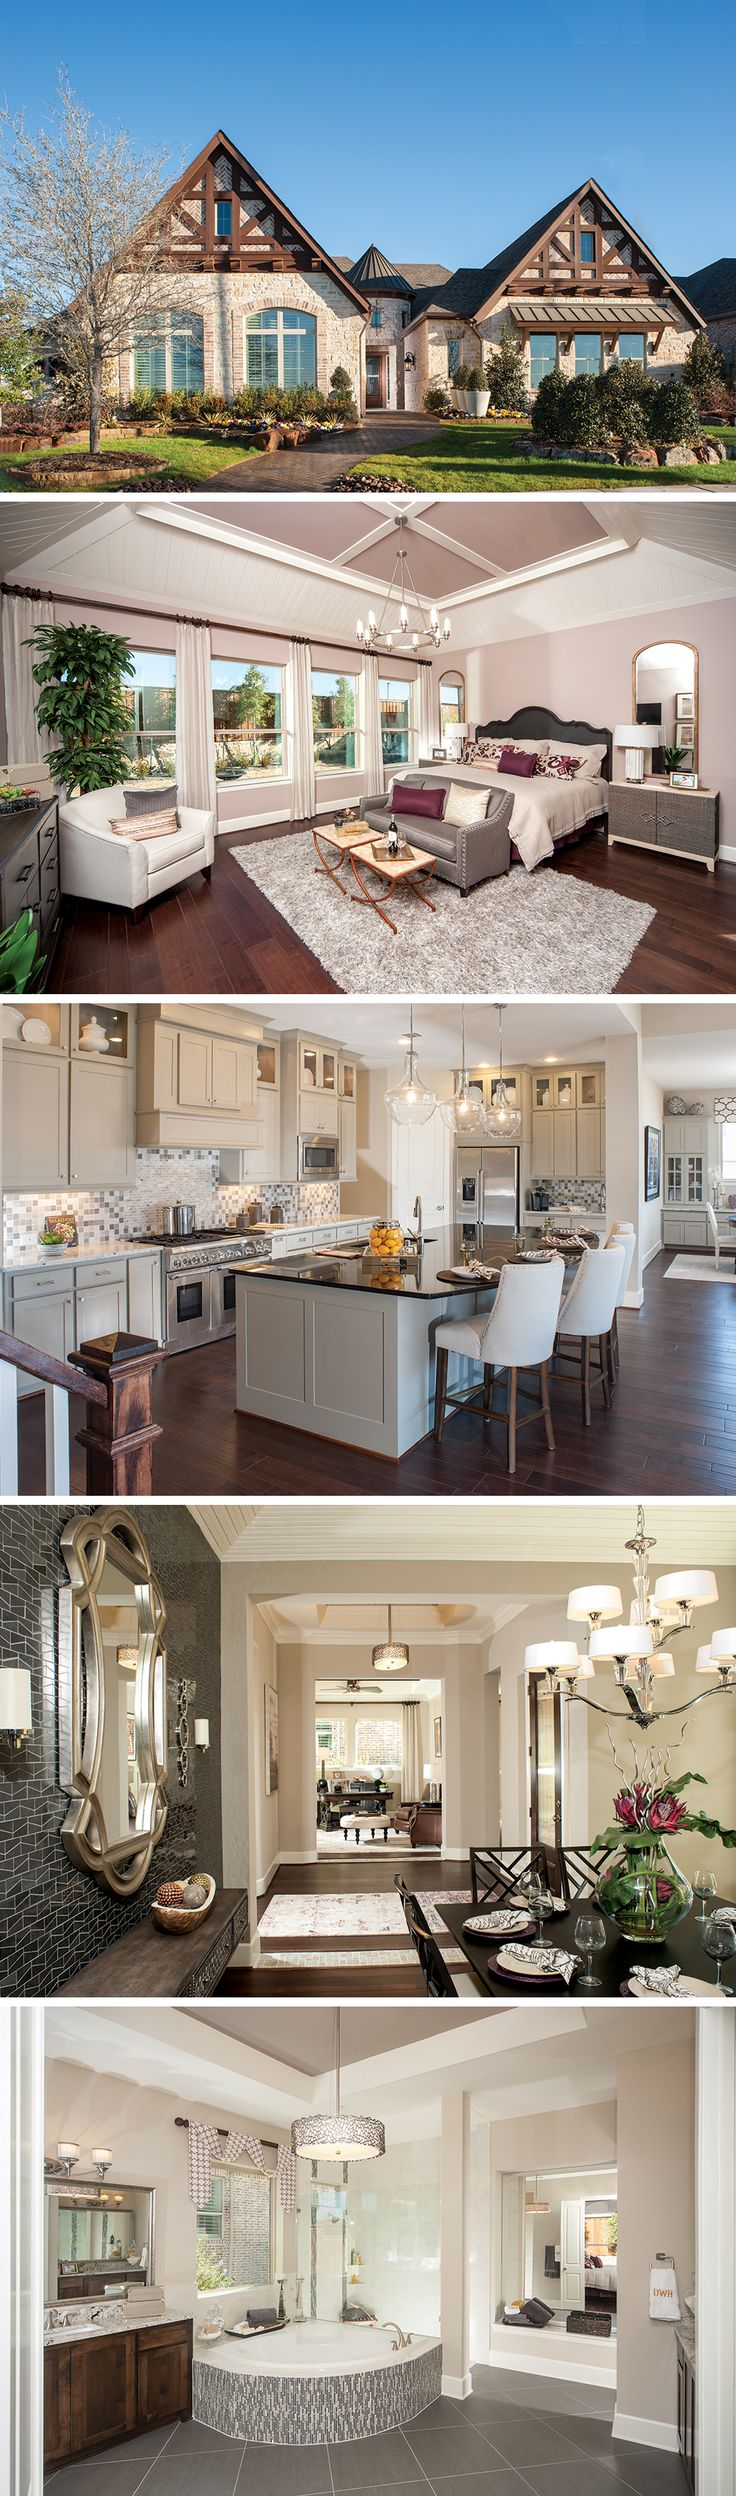 The Belleview By David Weekley Homes In Windsong Ranch Is A 4 Bedroom 3  Bathroom Home